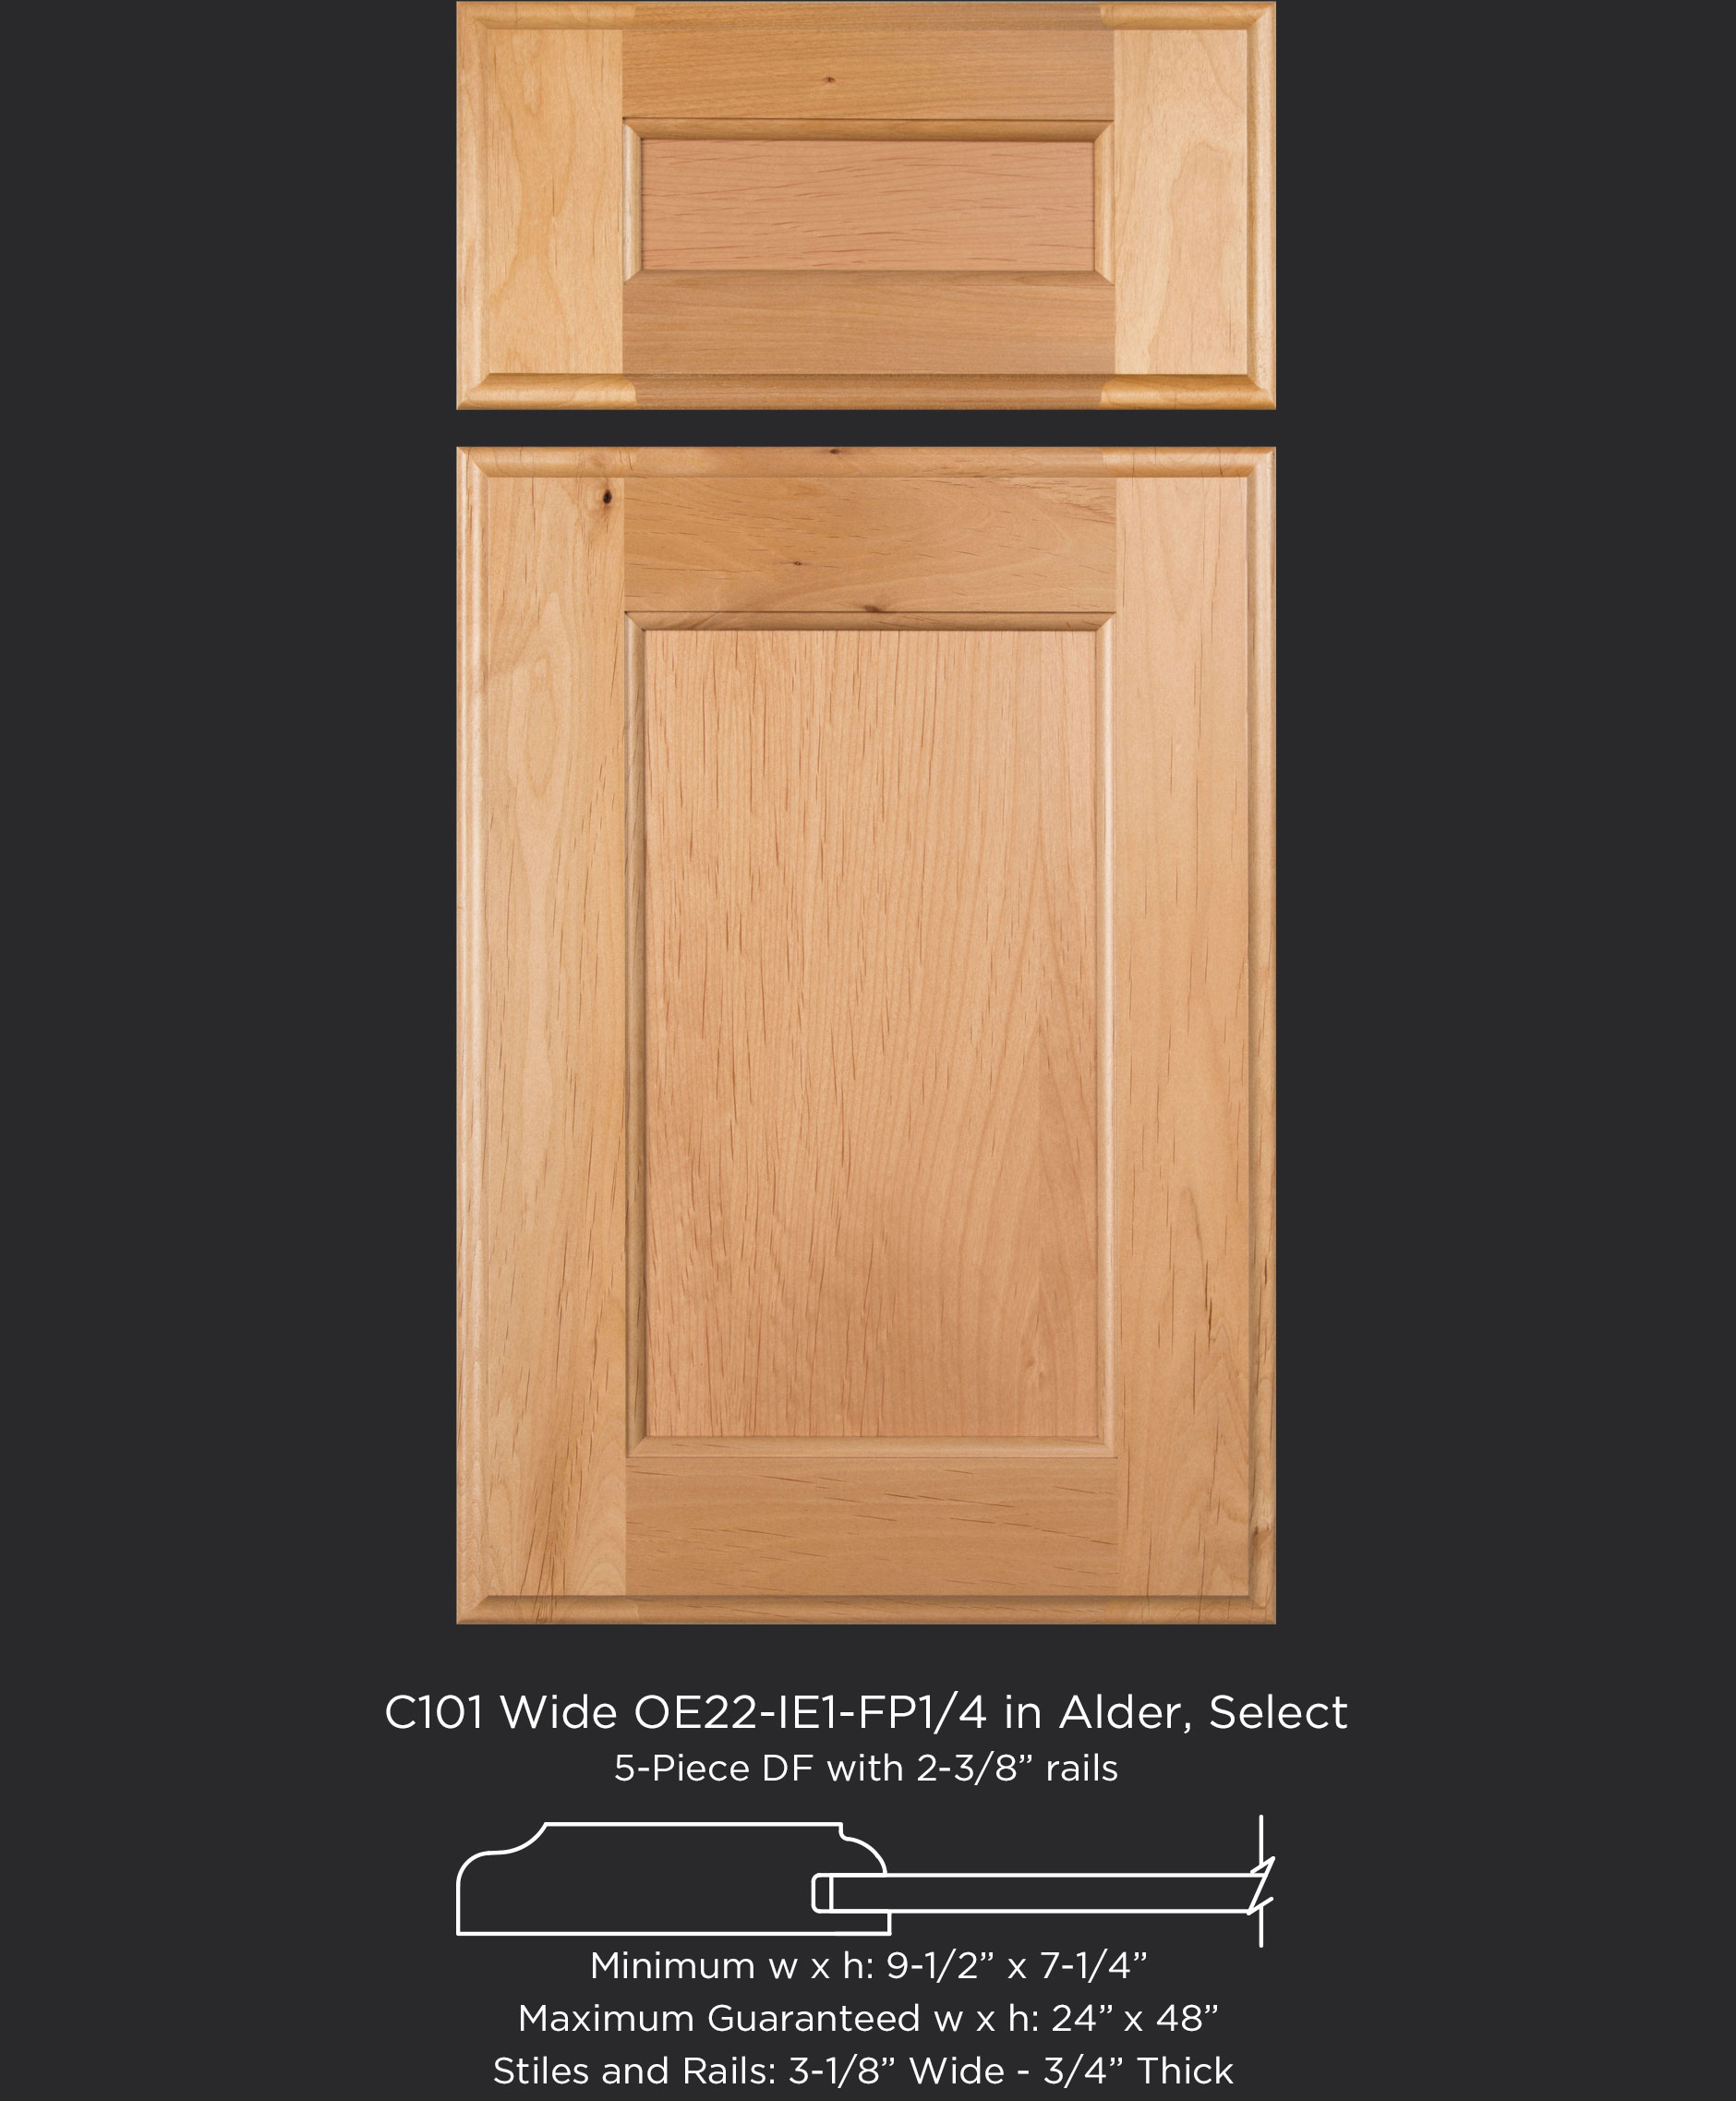 Cope and Stick Cabinet Door C101 Wide OE22-IE1-FP1/4 Alder, Select and 5-piece drawer front